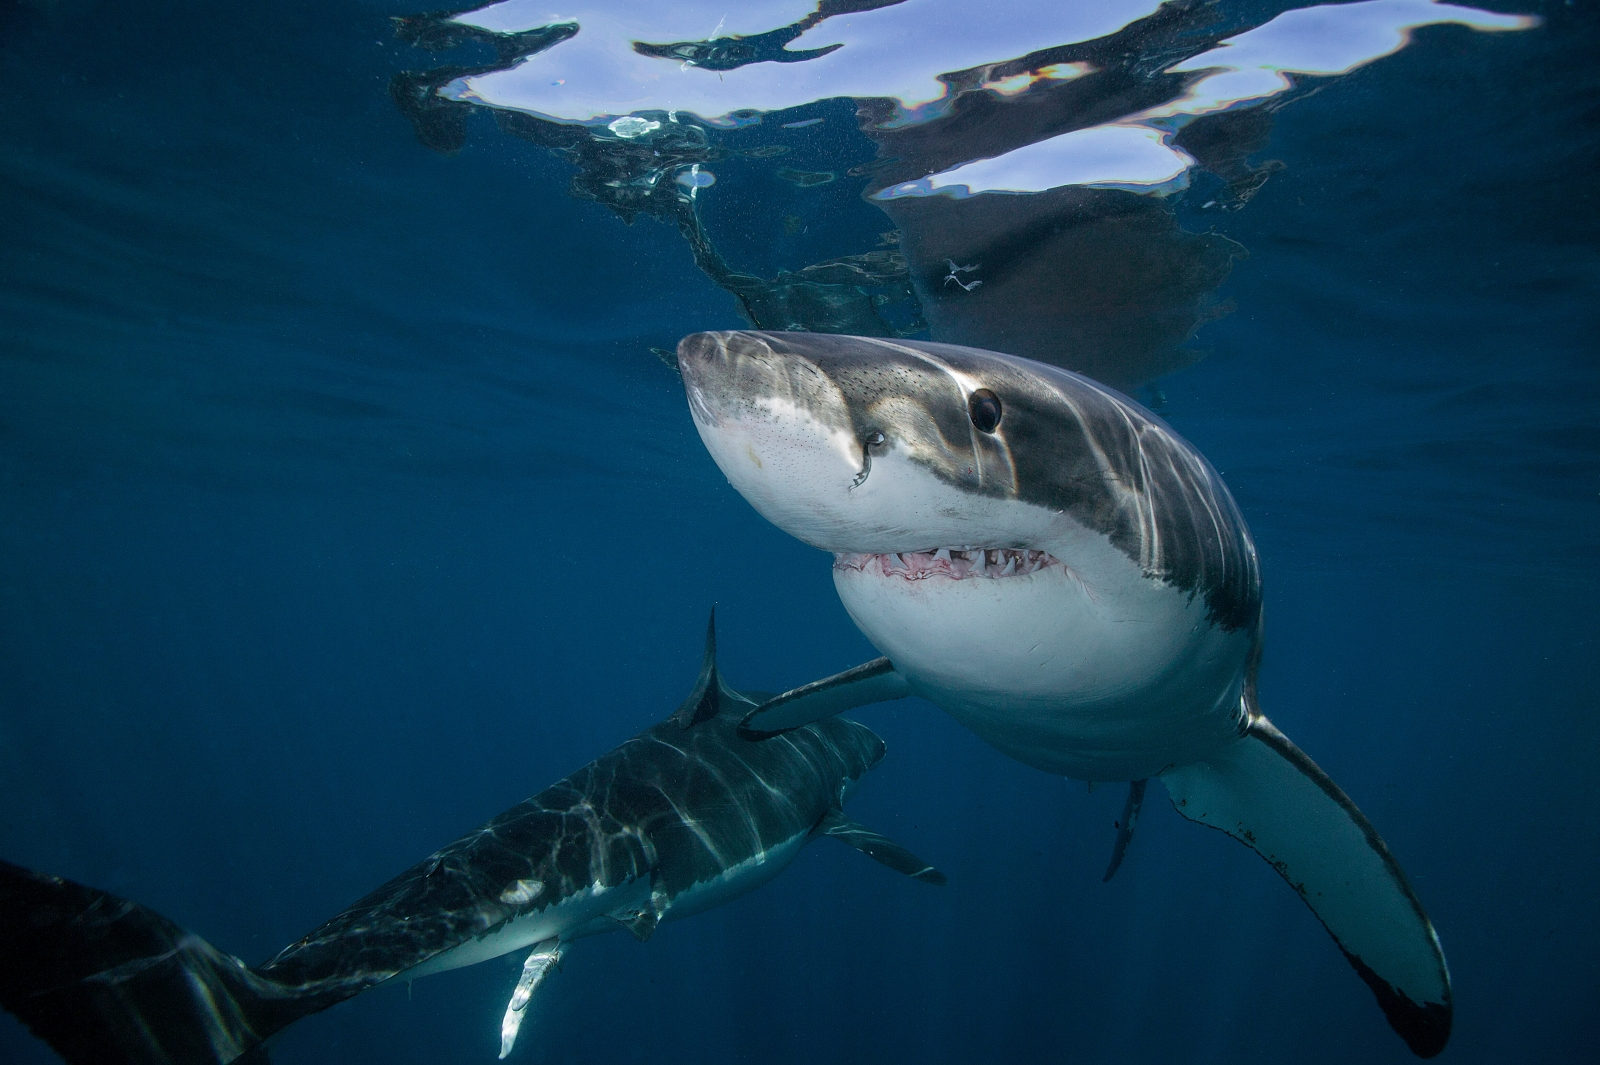 Biggest great white shark ever? Pictures show monster ...